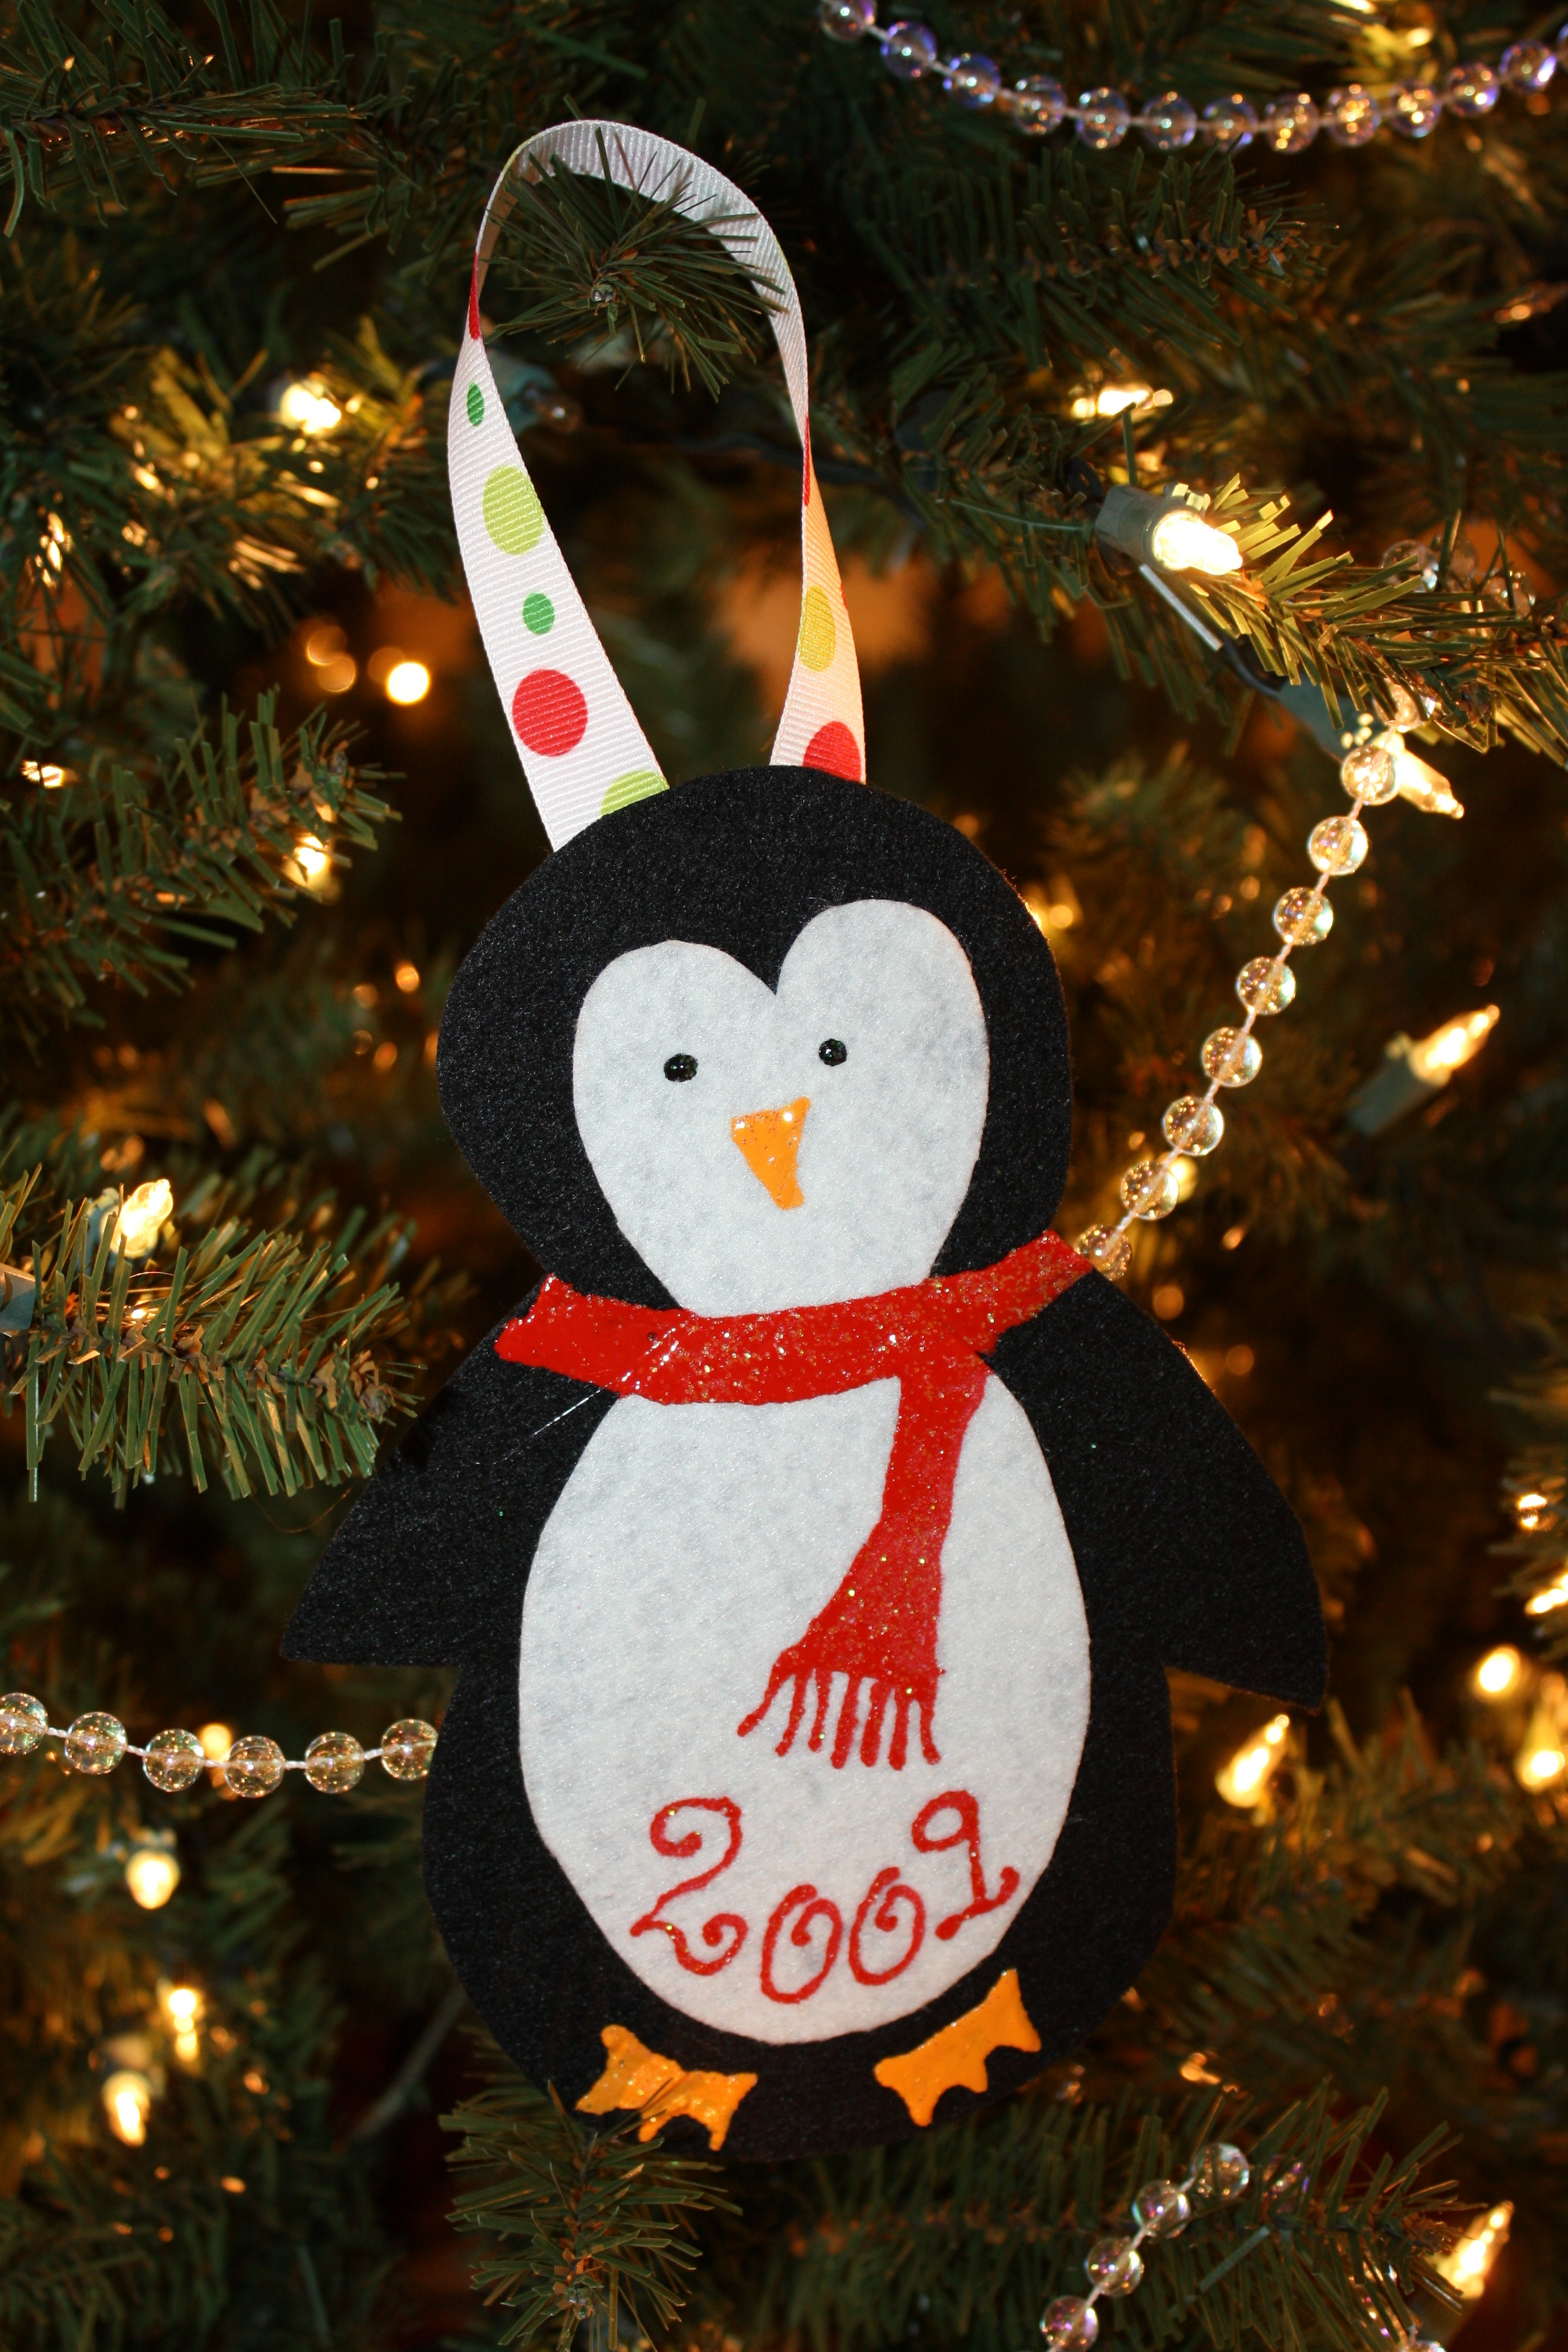 Christmas Crafts - Homemade Felt Ornaments - Happy Home Fairy